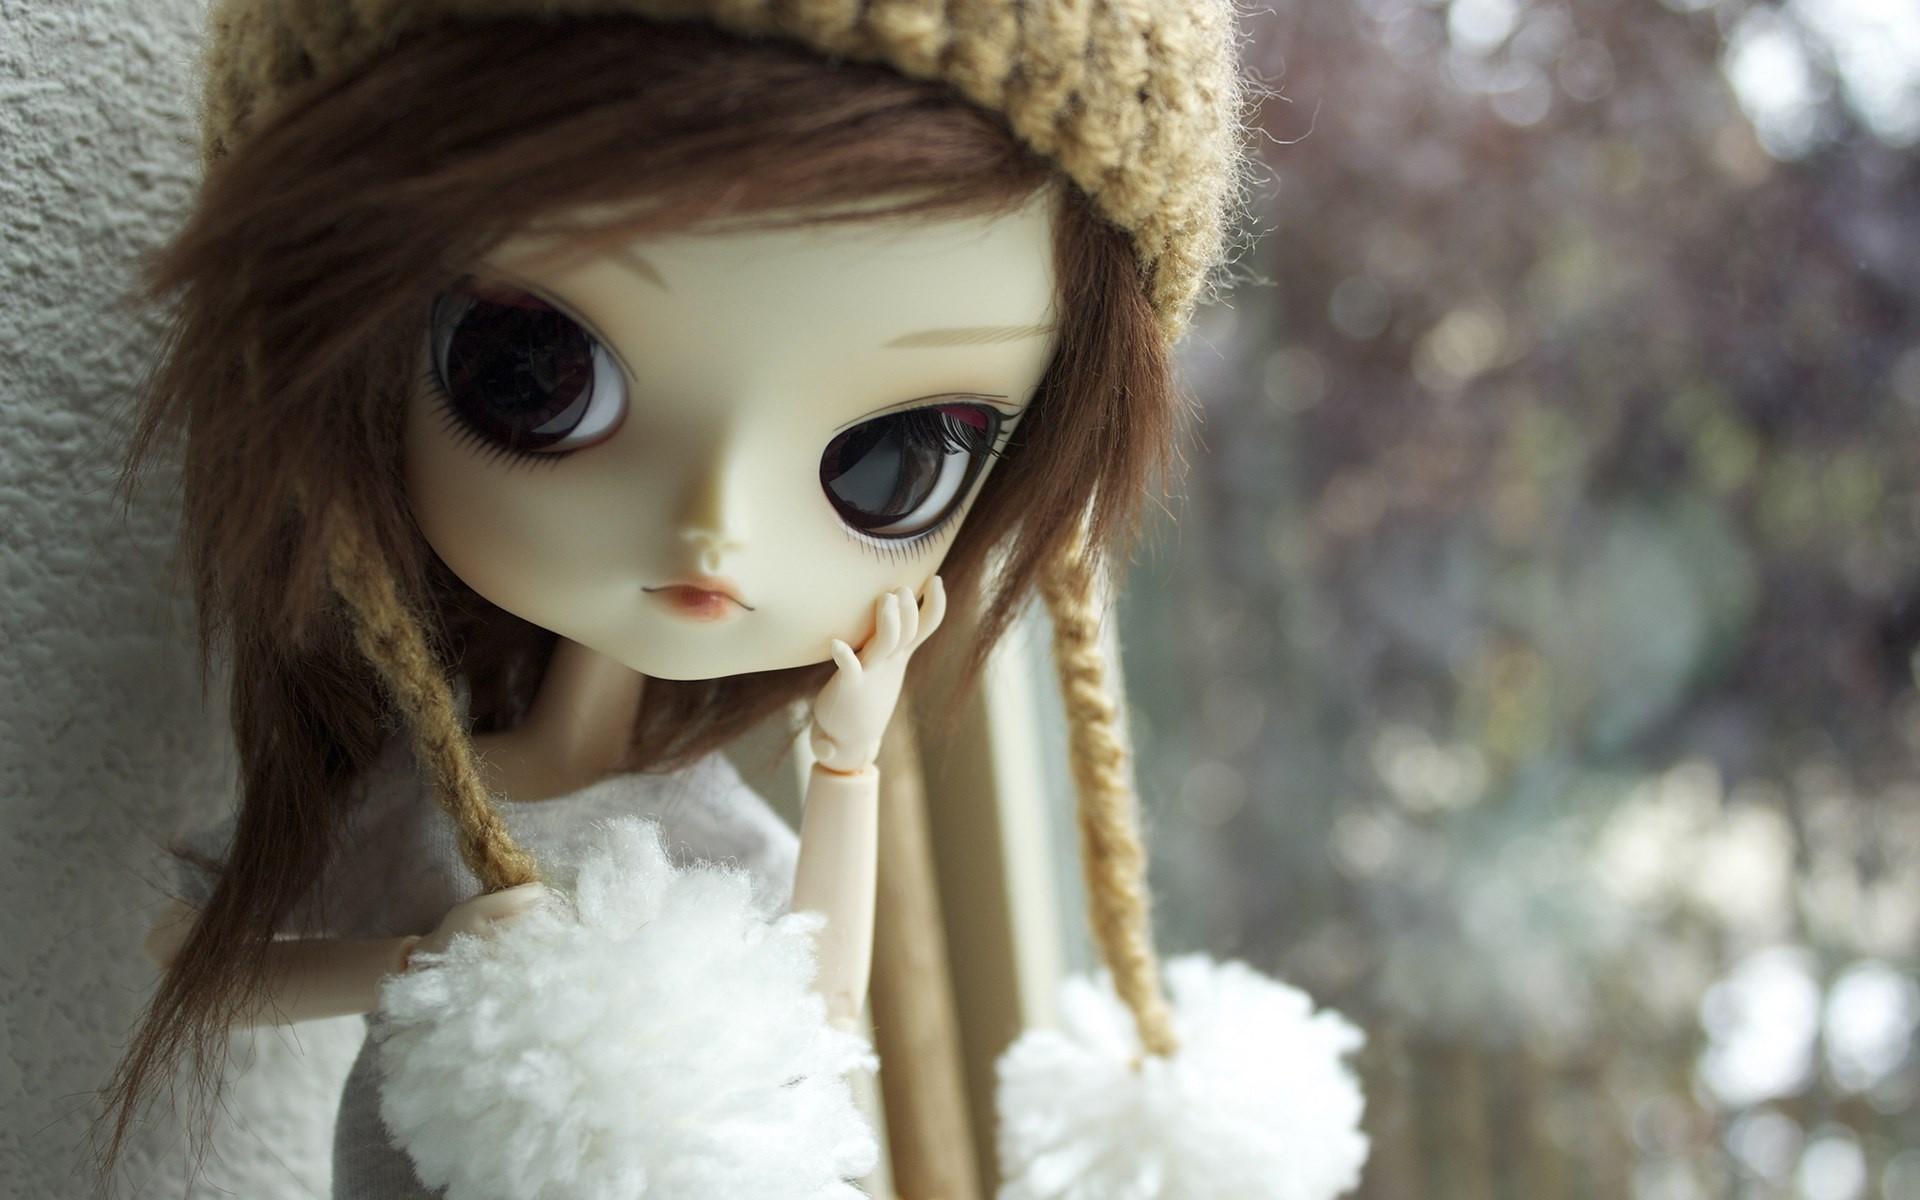 Stylish and modern doll cute looks wallpapers